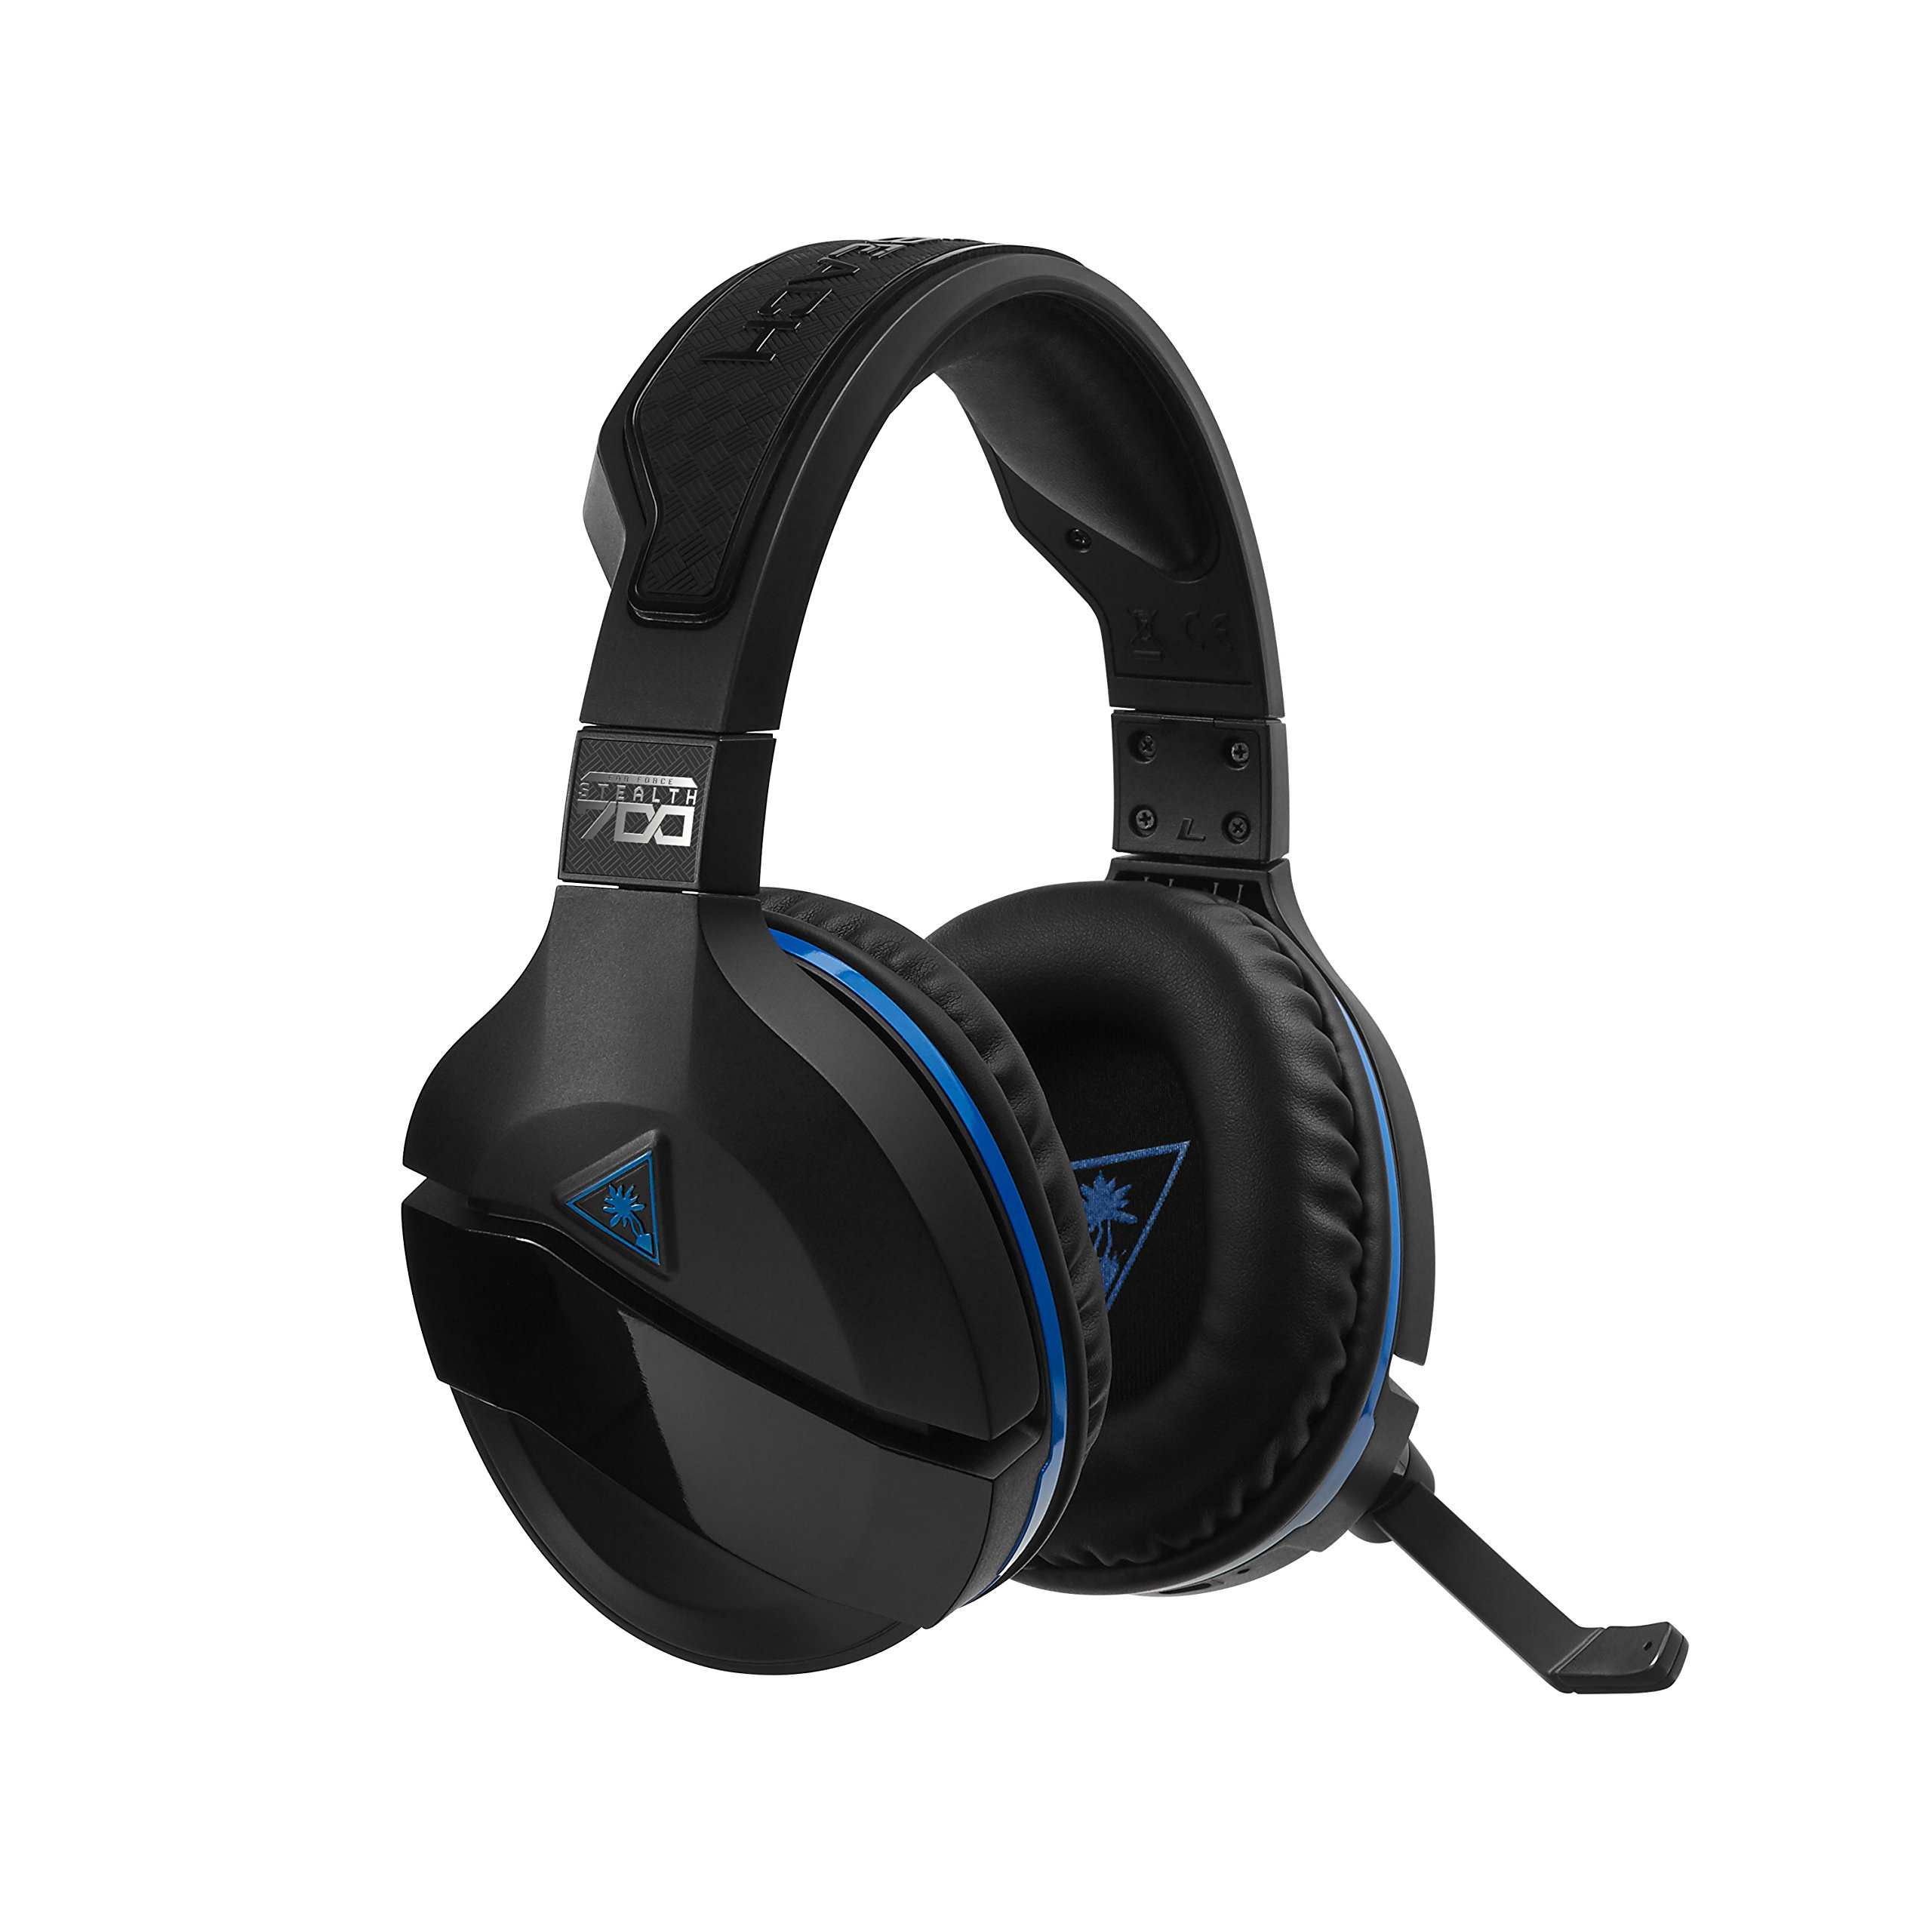 Turtle Beach Stealth 700 Premium Wireless Surround Sound Gaming Headset for PlayStation 4 Pro and PlayStation 4 by Turtle Beach